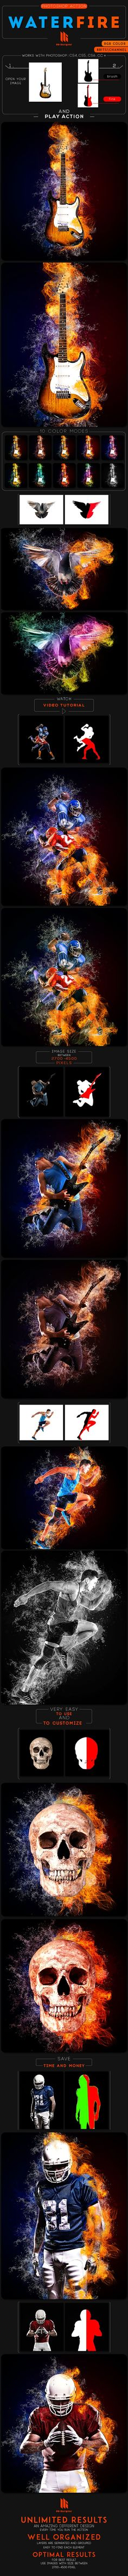 Waterfire Photoshop Action - Photo Effects Actions